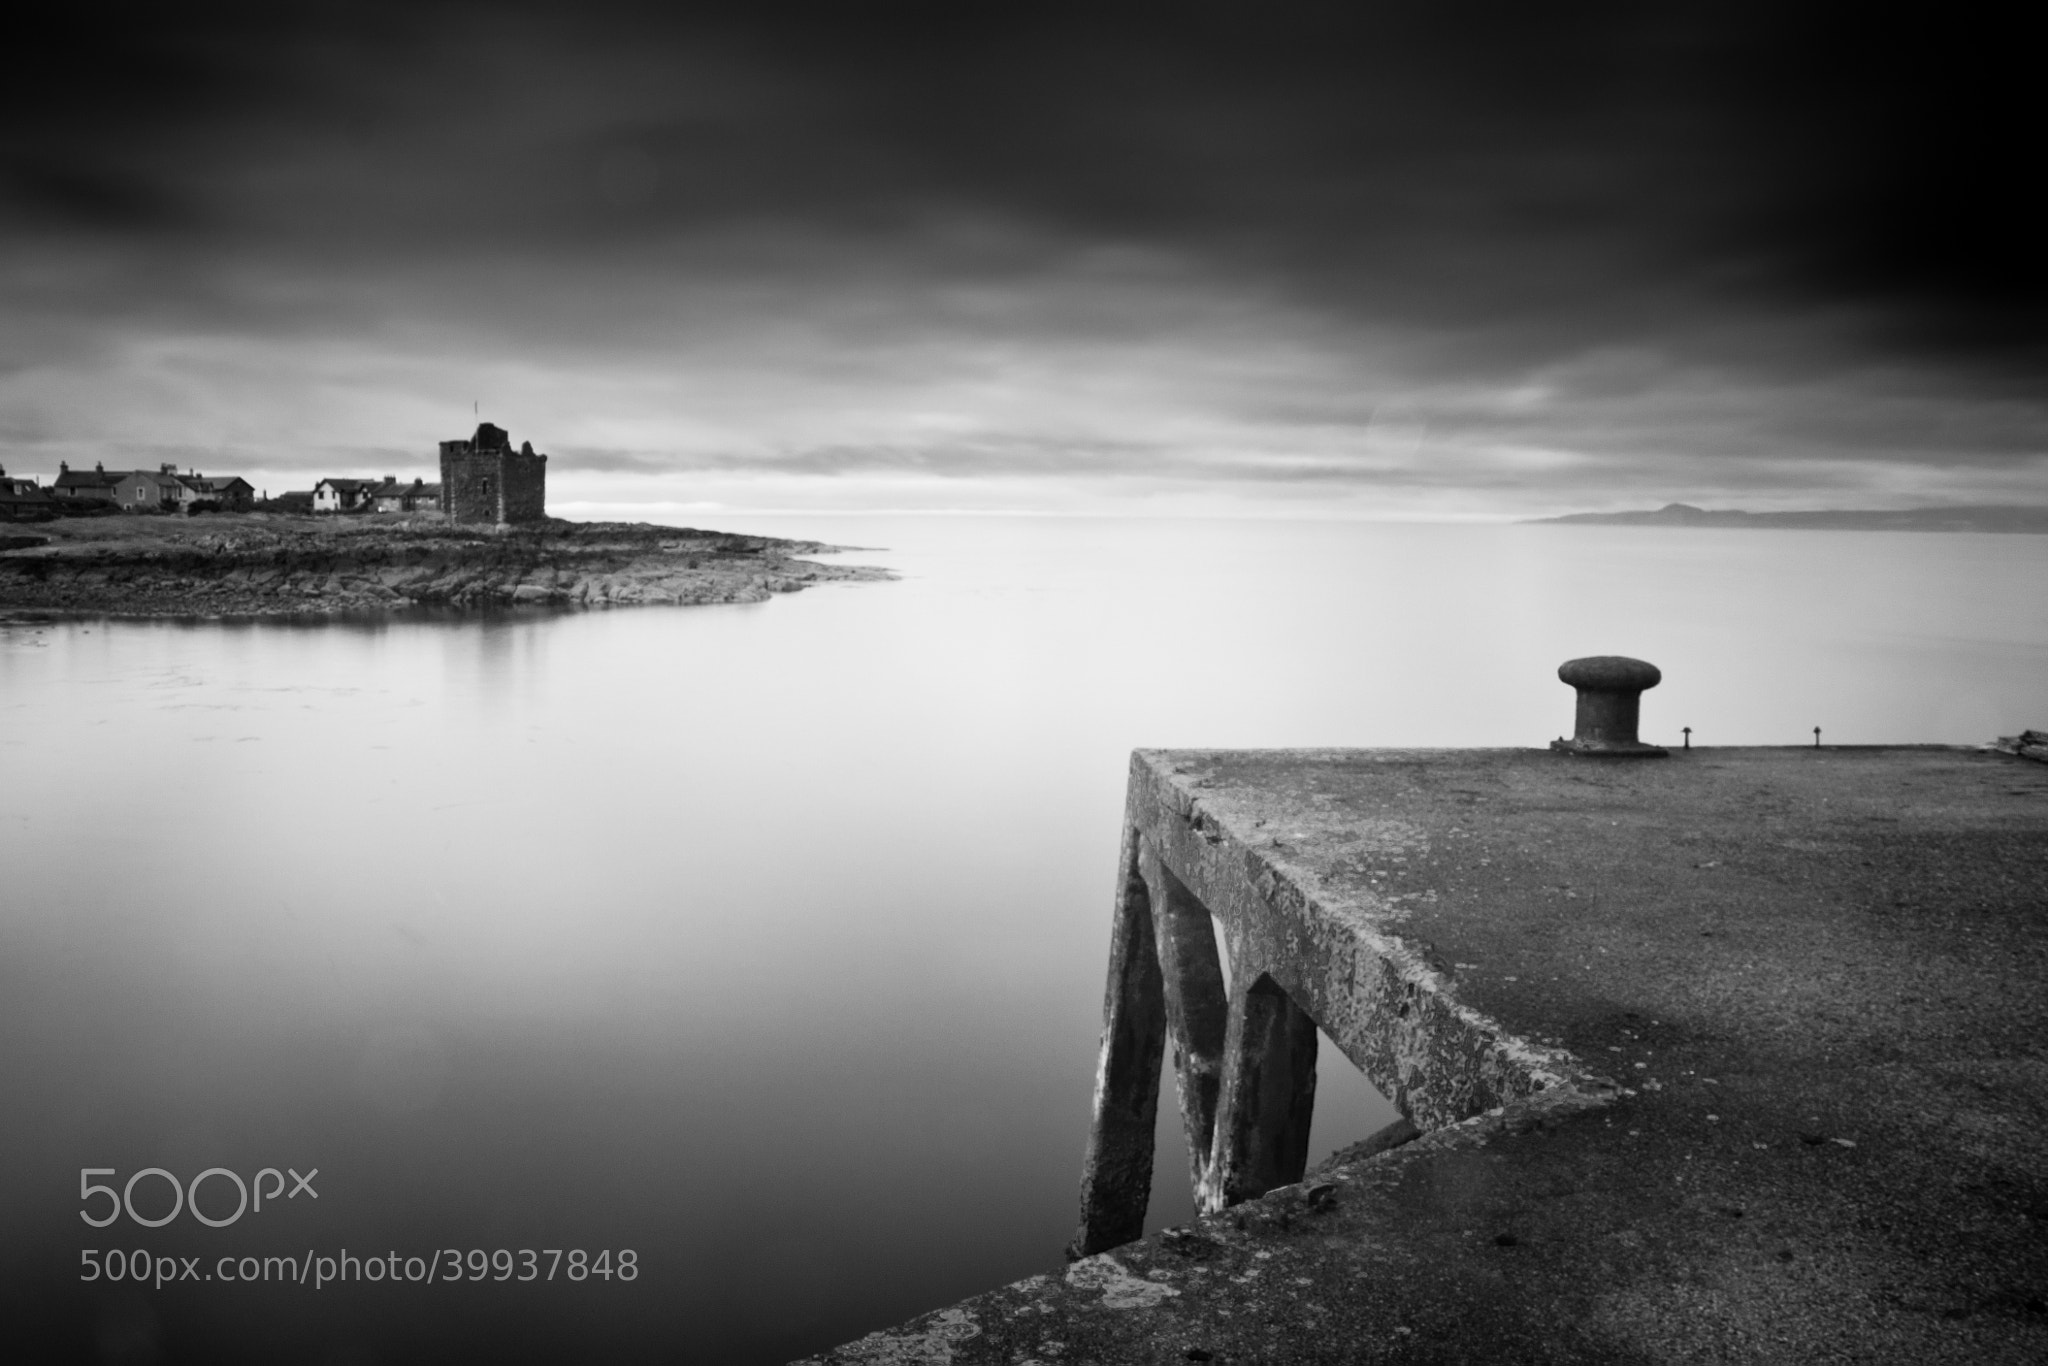 Photograph The Pier at Portencross #2 by Callum Strachan on 500px